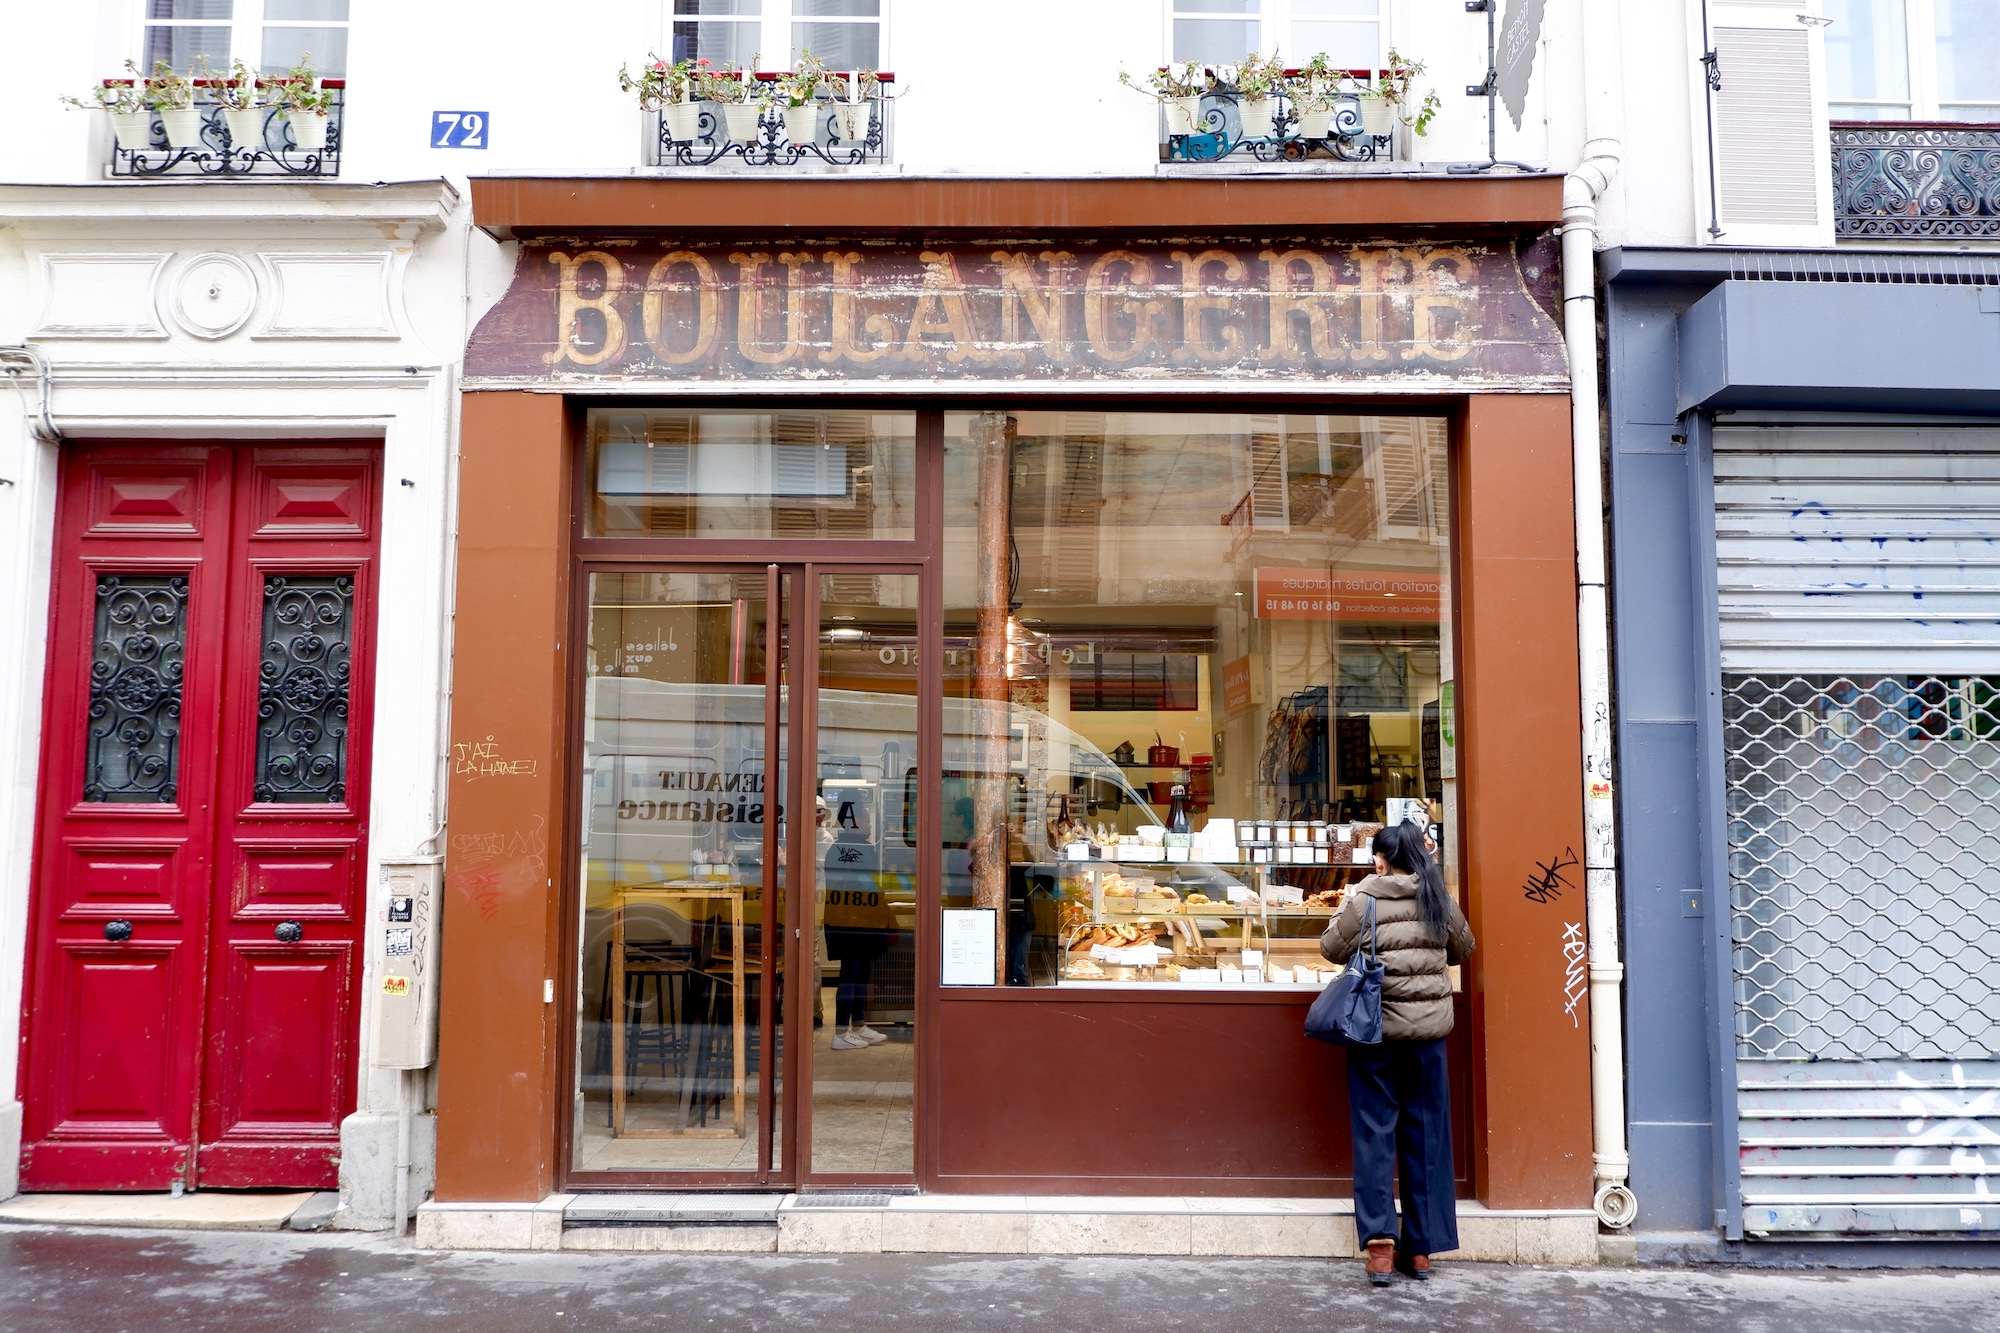 The facade of a boulangerie. There is a vintage sign above the windows. A woman is looking in the windows at the pastries on display.